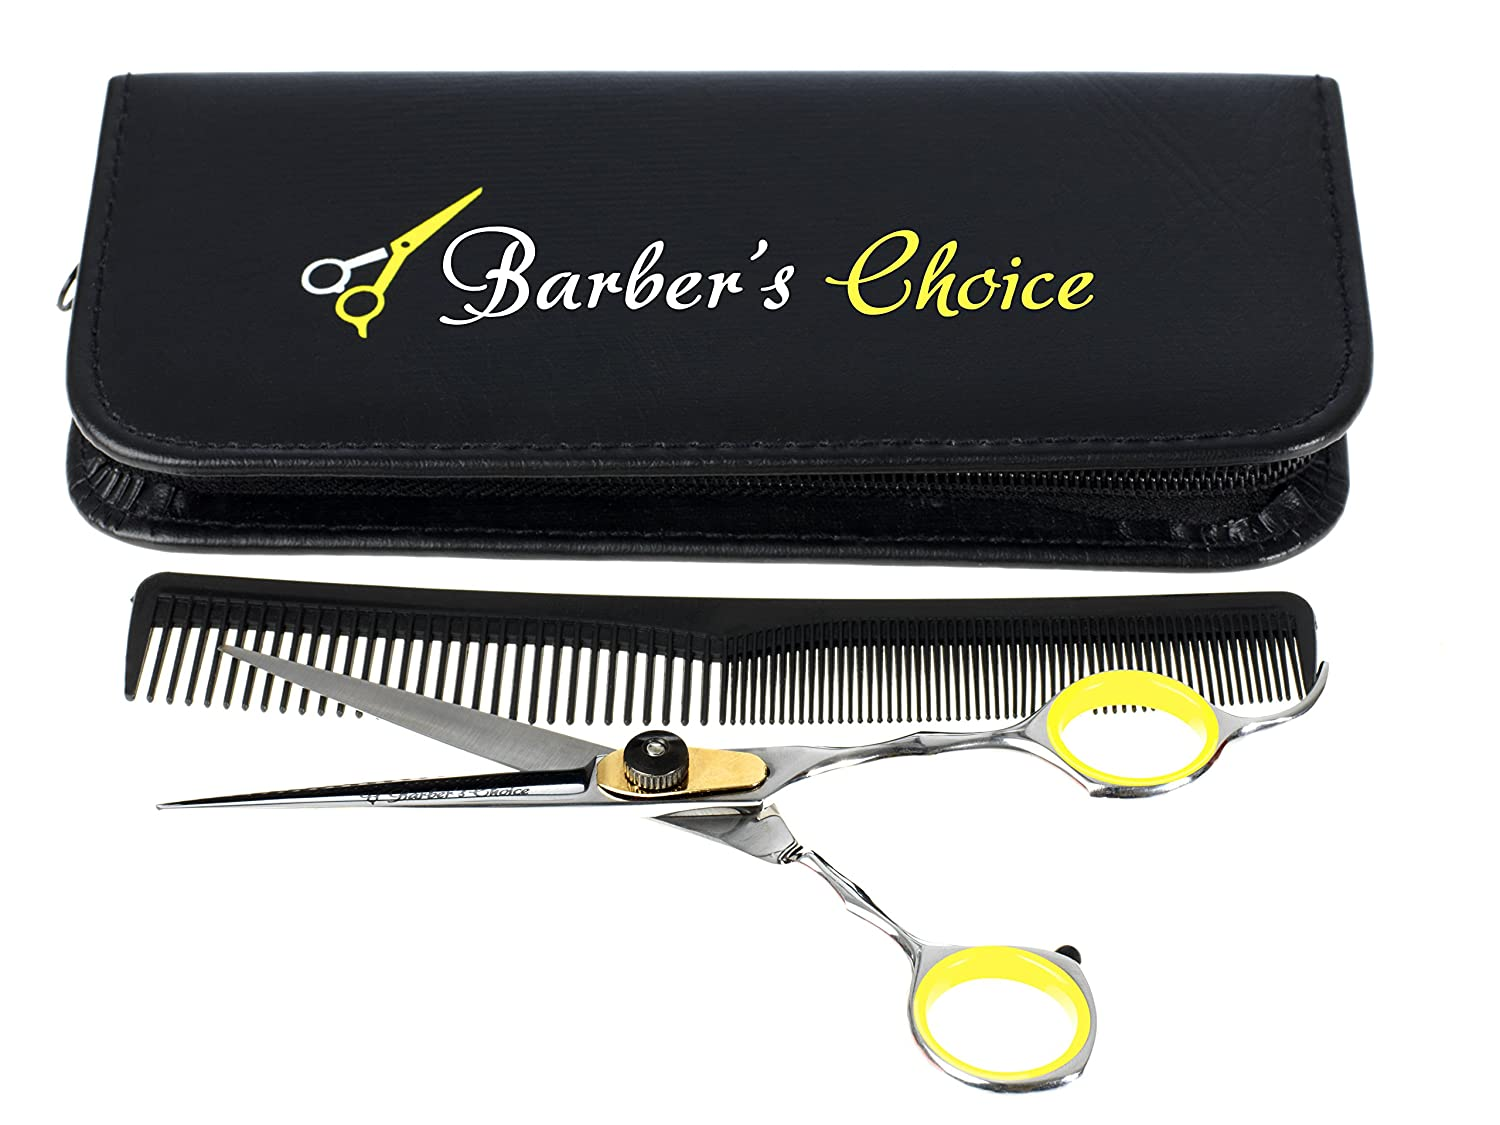 Barber's Choice Professional Hair Cutting Barber Scissors / Shears - 6.5 Inches Long, 420 Japanese Stainless Steel with Adjustment Tension Screw - Includes a Premium Carrying Case & Matching Comb Barber's Choice BC-001